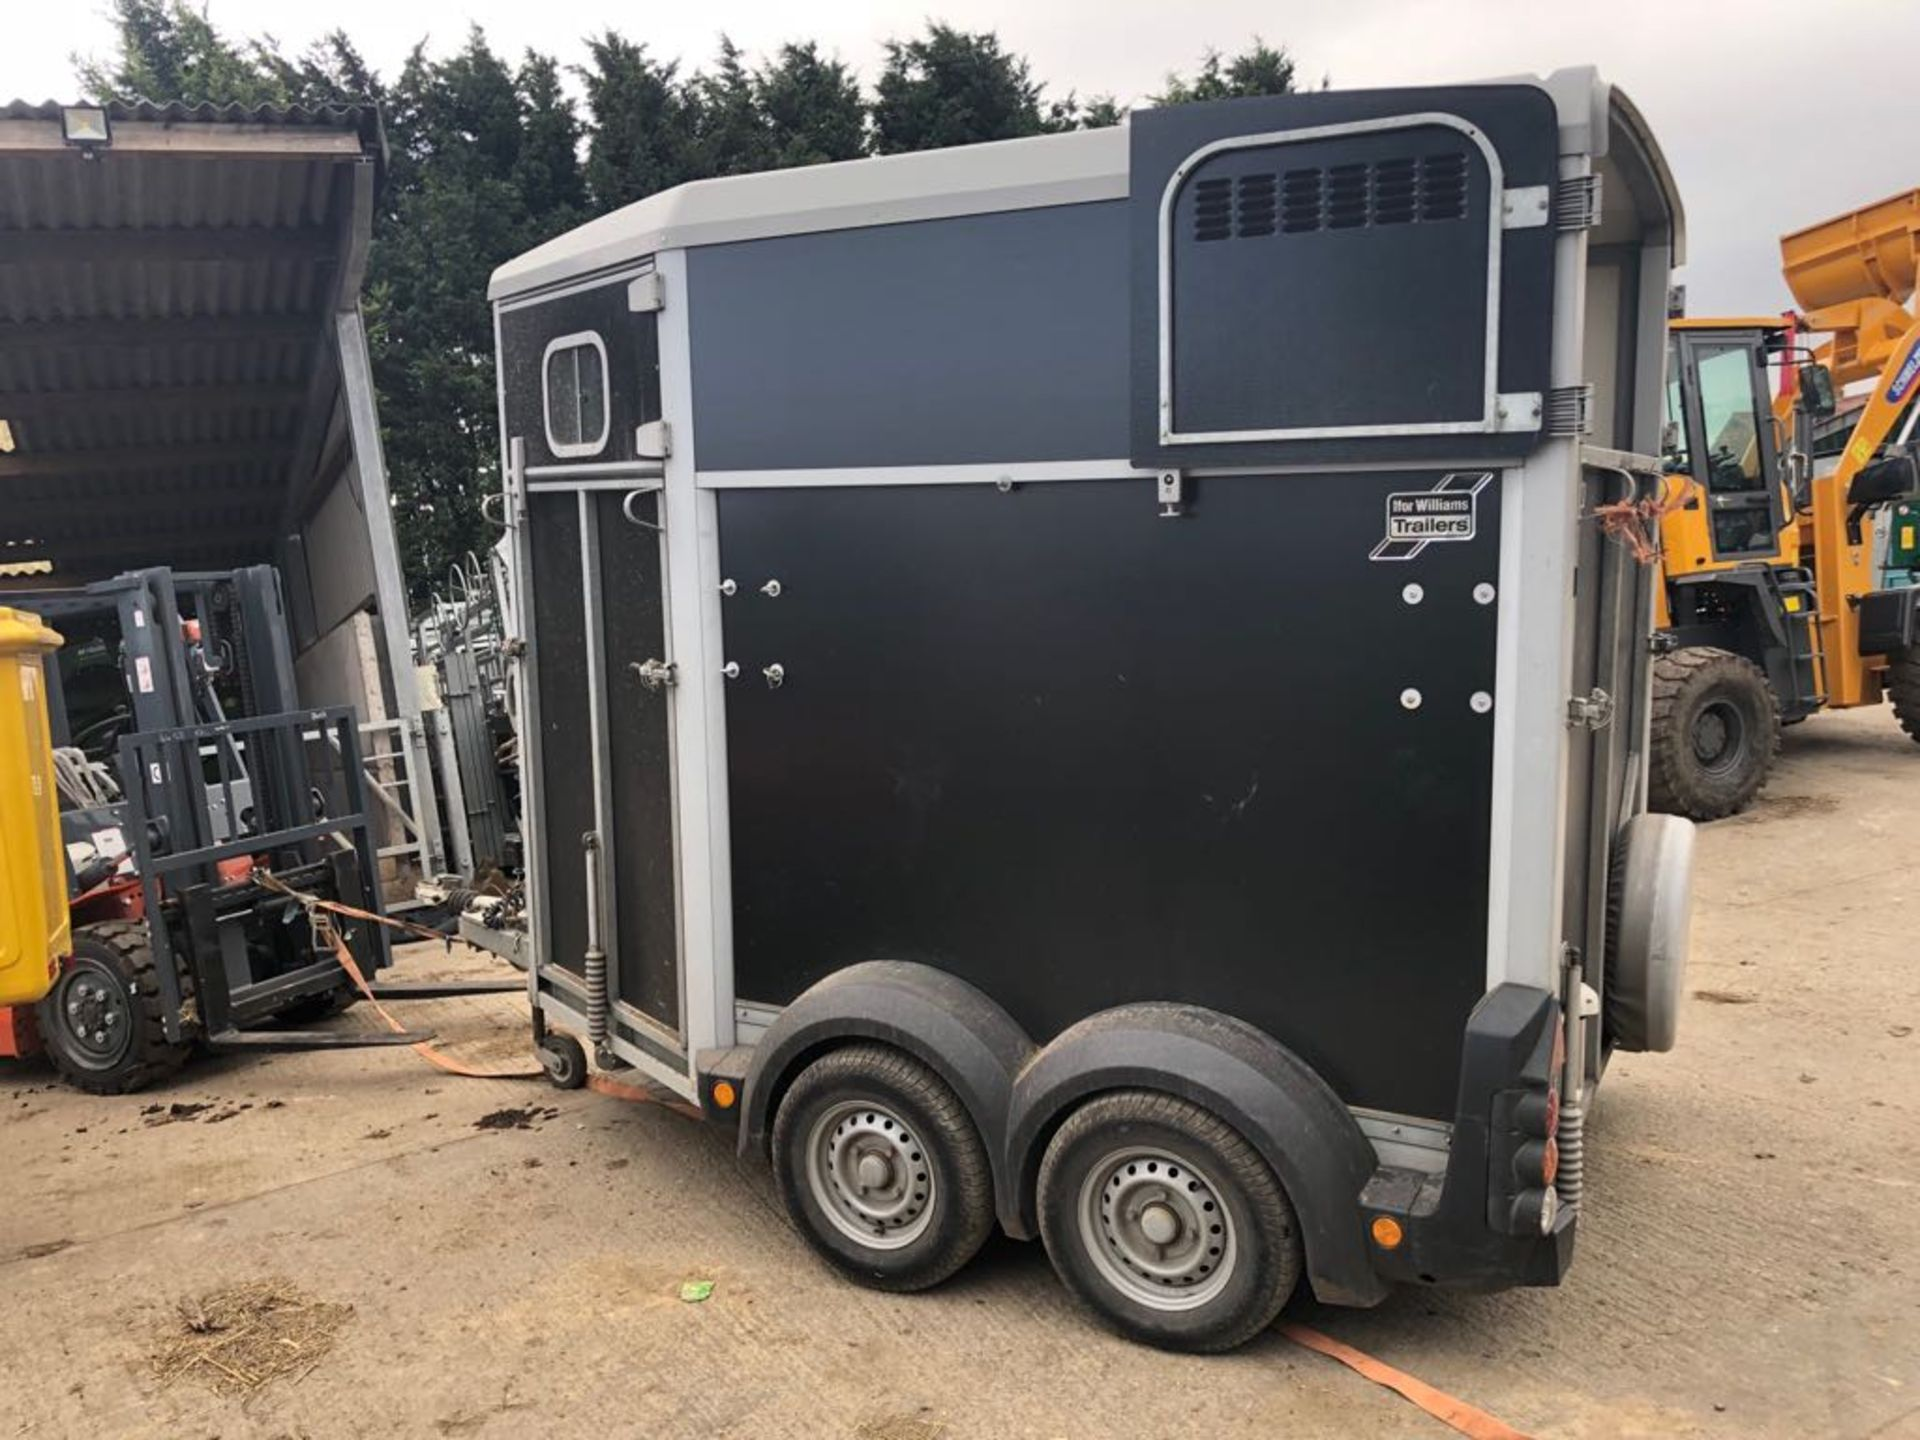 Lot 151 - 2015 IFOR WILLIAMS TWIN AXLE HORSE BOX TRAILER HB506 BLACK *PLUS VAT*